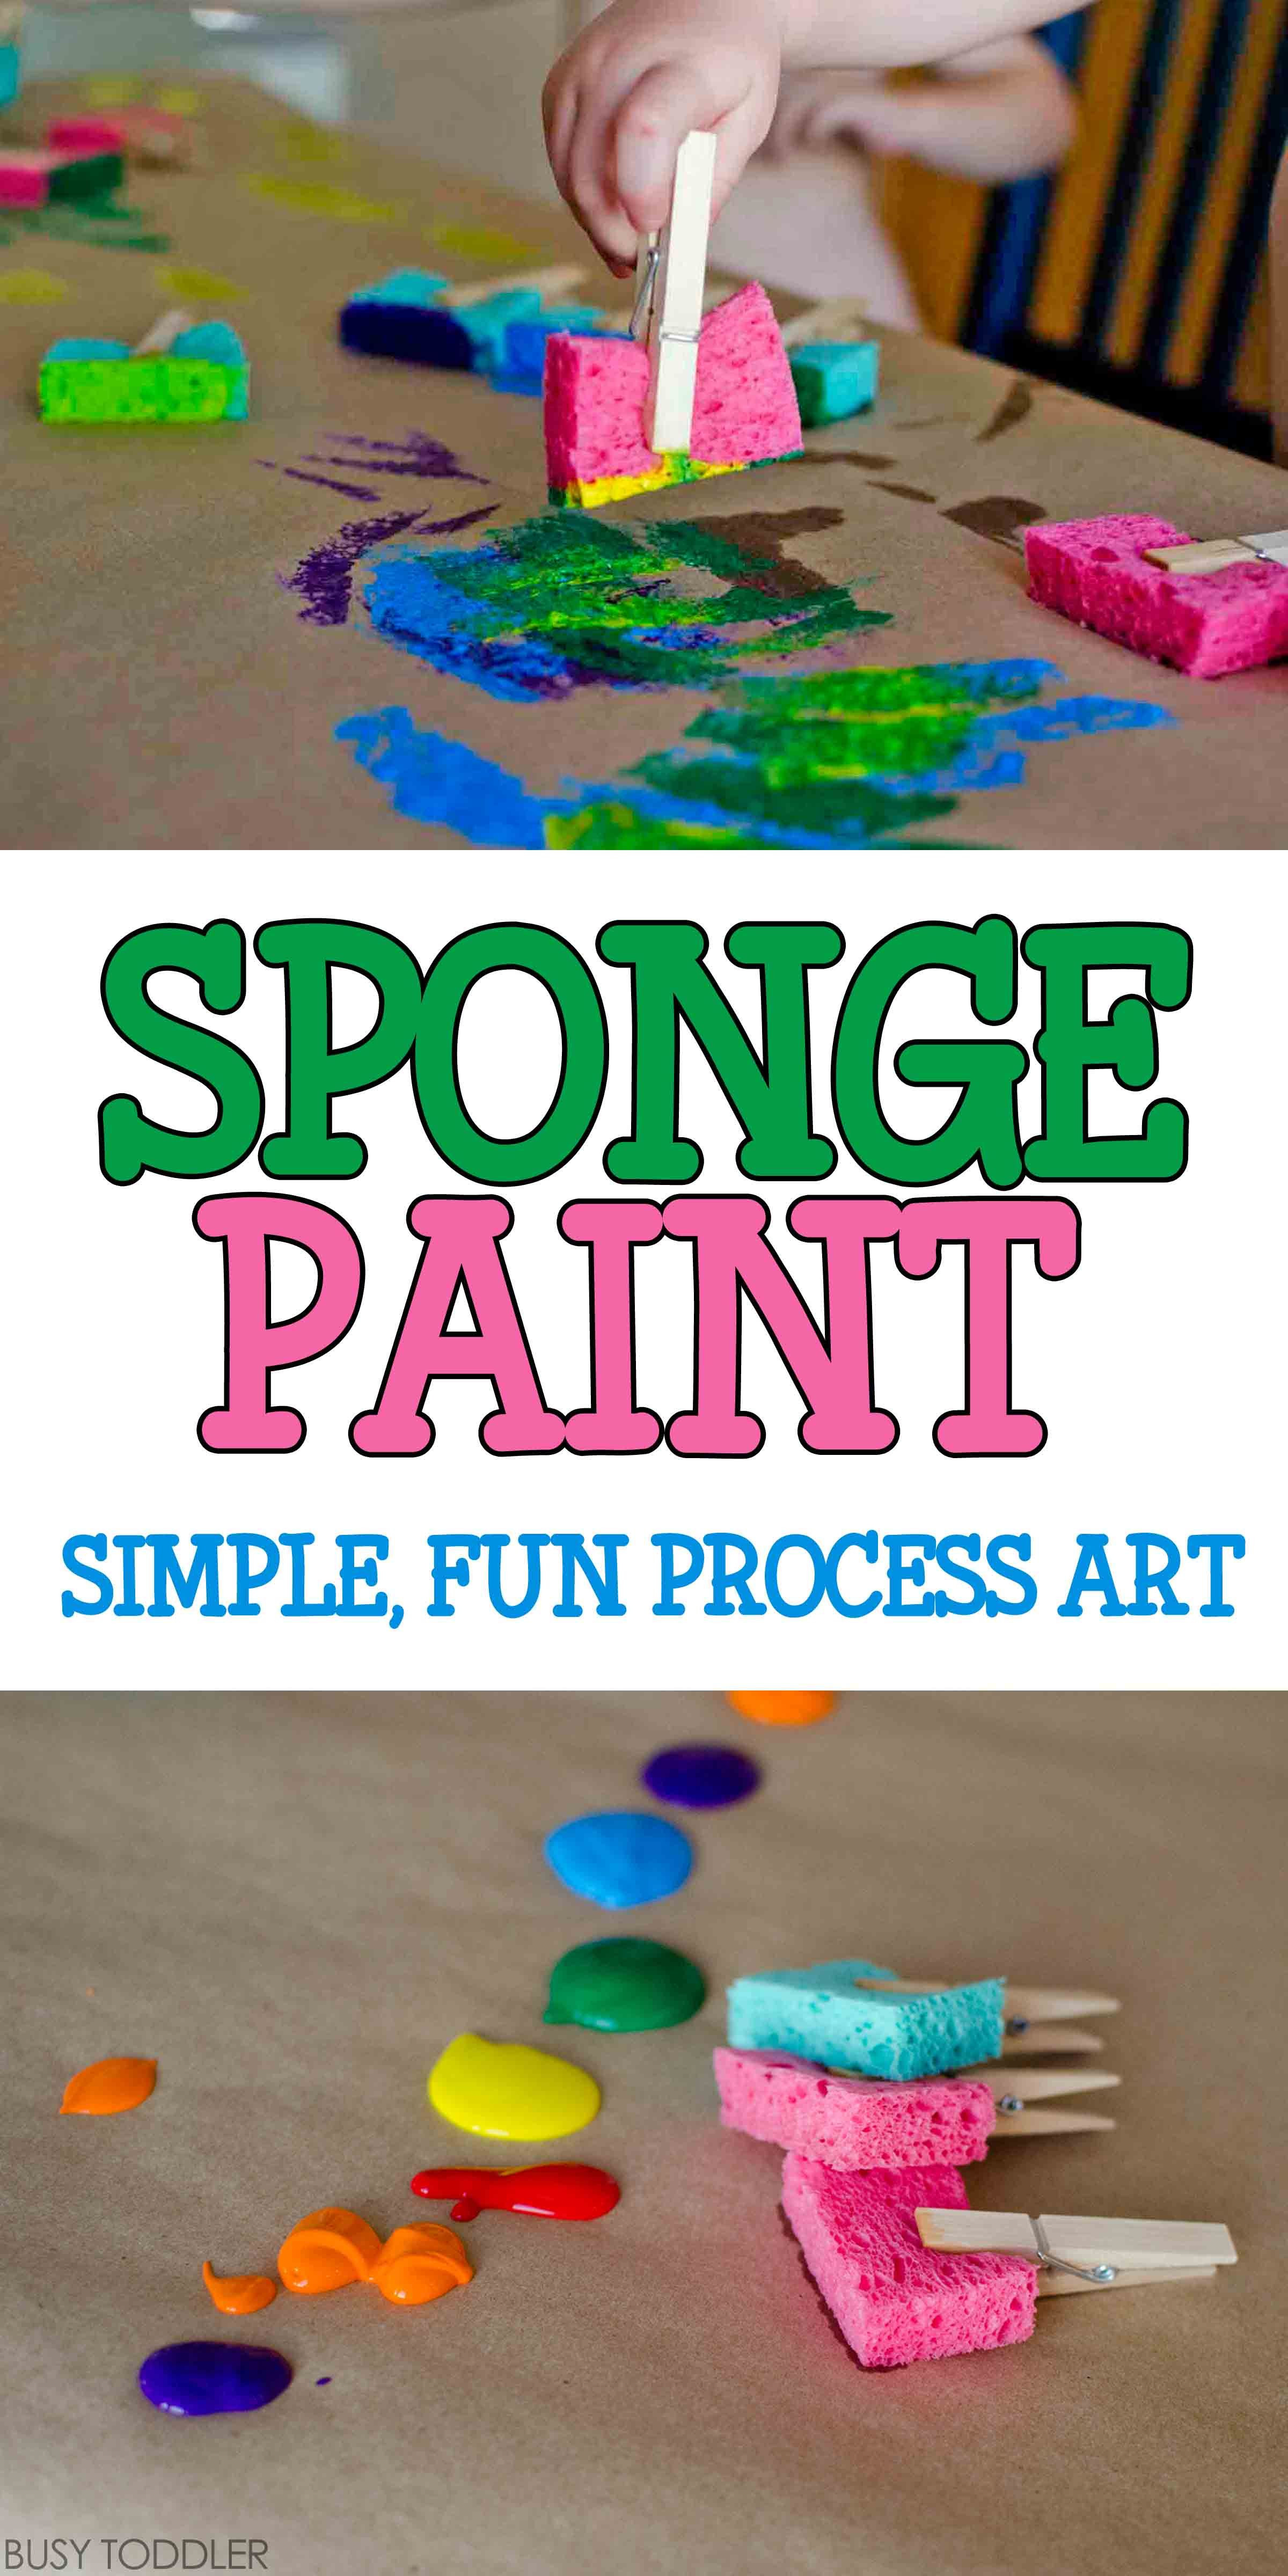 Best ideas about Easy Art For Preschoolers . Save or Pin Sponge Painting Process Art BUSY TODDLER Now.